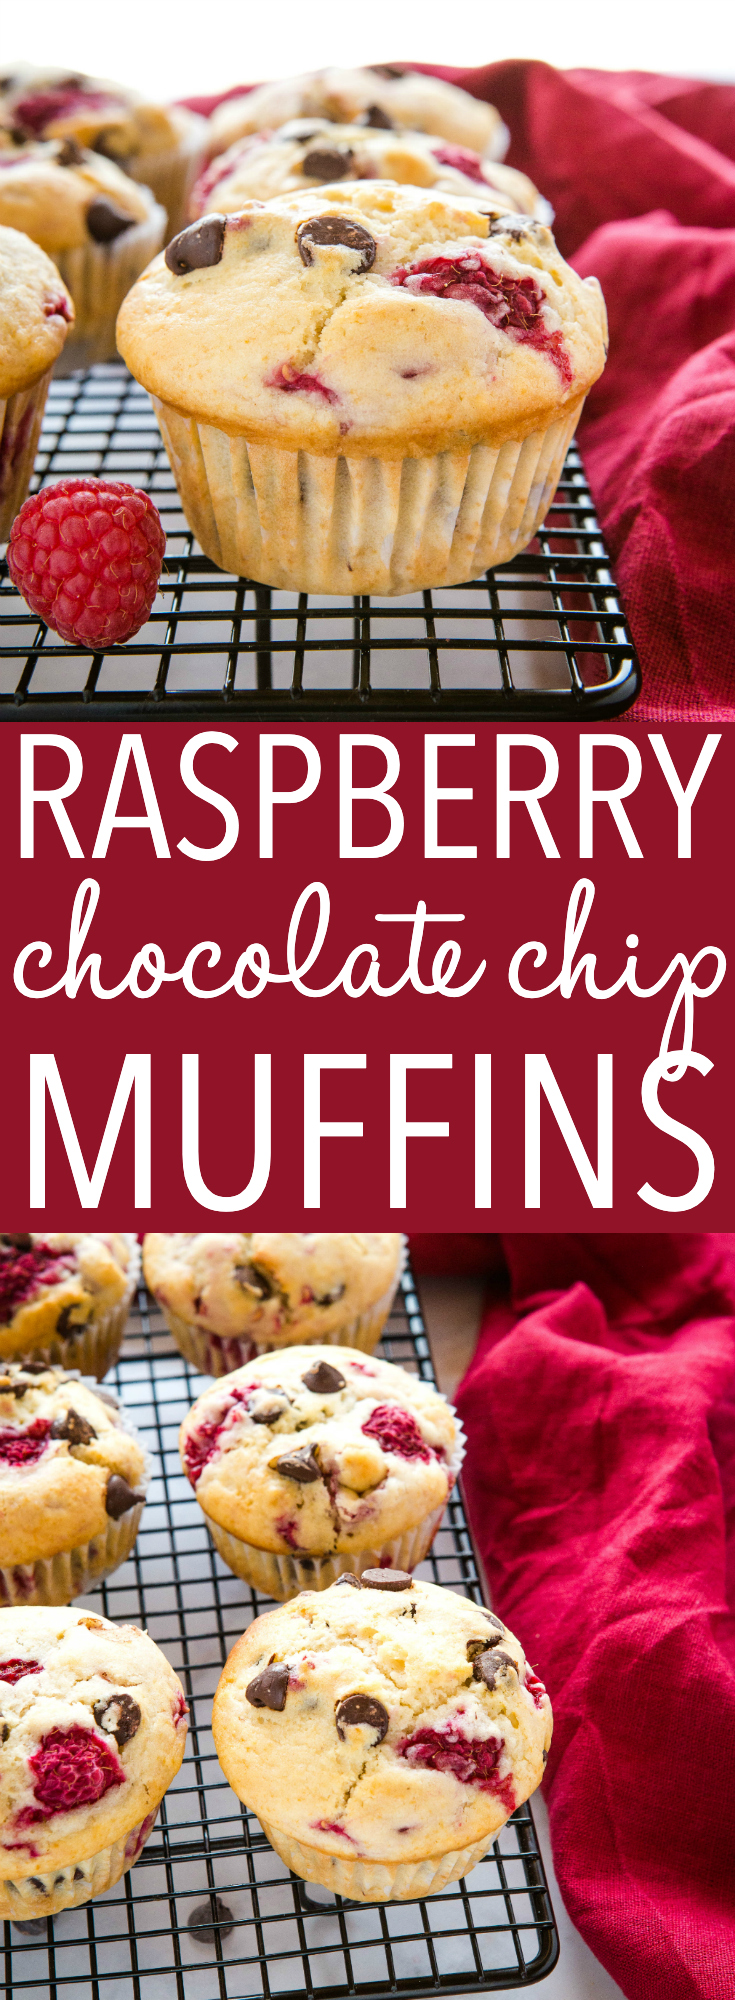 These Raspberry Muffins with Chocolate Chips are the perfect sweet treat for breakfast or brunch. Make this recipe for moist, tender muffins packed with sweet chocolate chips and juicy, fresh raspberries! Recipe from thebusybaker.ca! #raspberrymuffins #muffins #baking #chocolatechip #sweet #baker #muffinrecipe via @busybakerblog